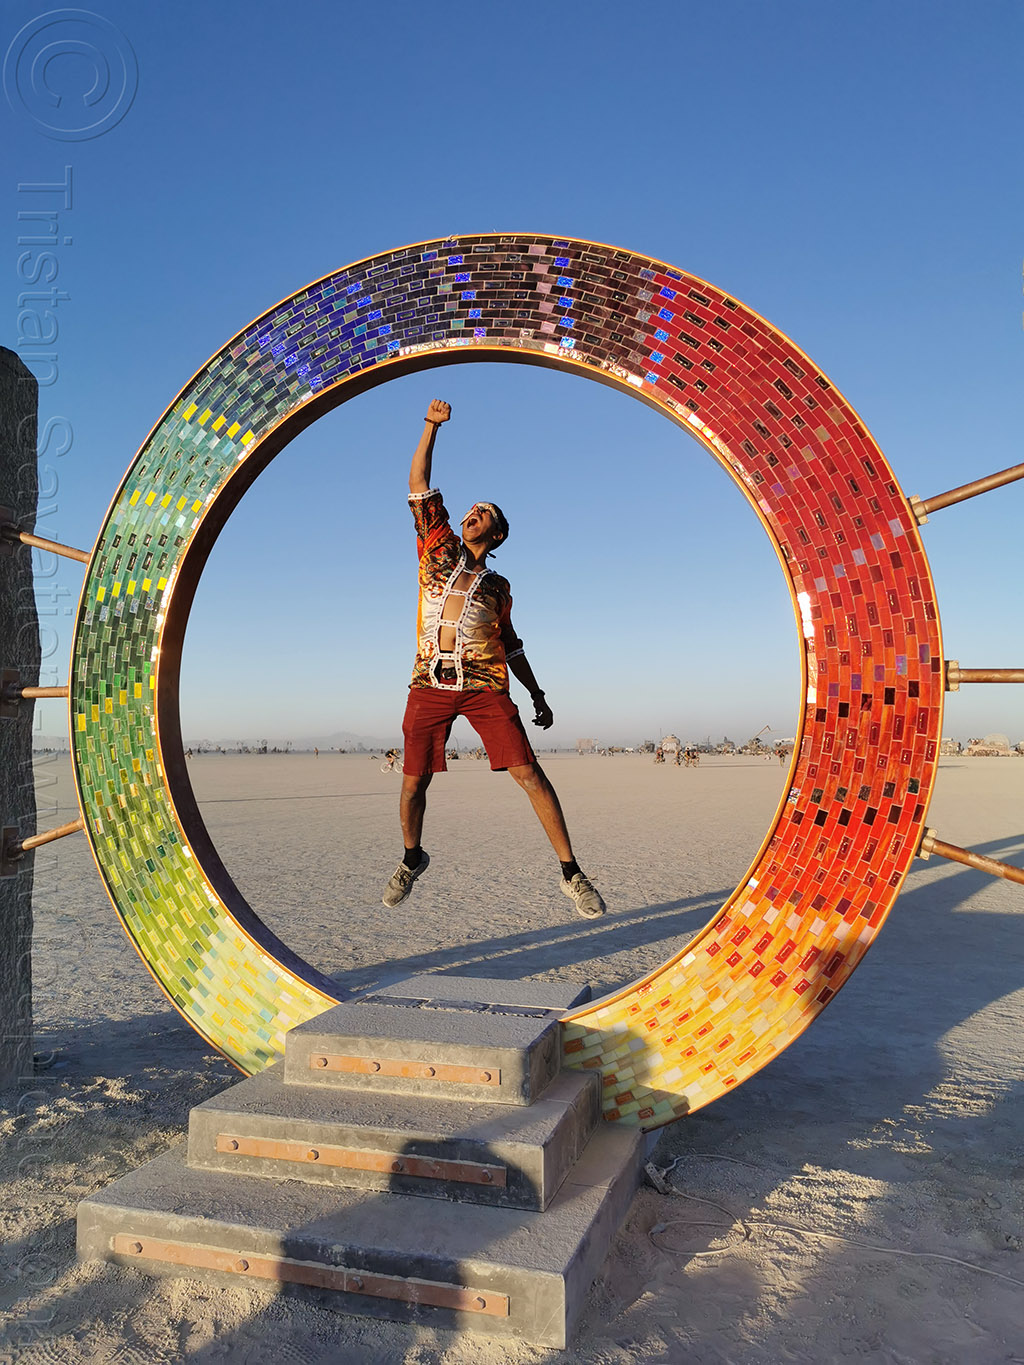 portal - burning man 2019, art city monsters, art installation, burning man, circle, david oliver, jumpshot, portal, ring, sculpture